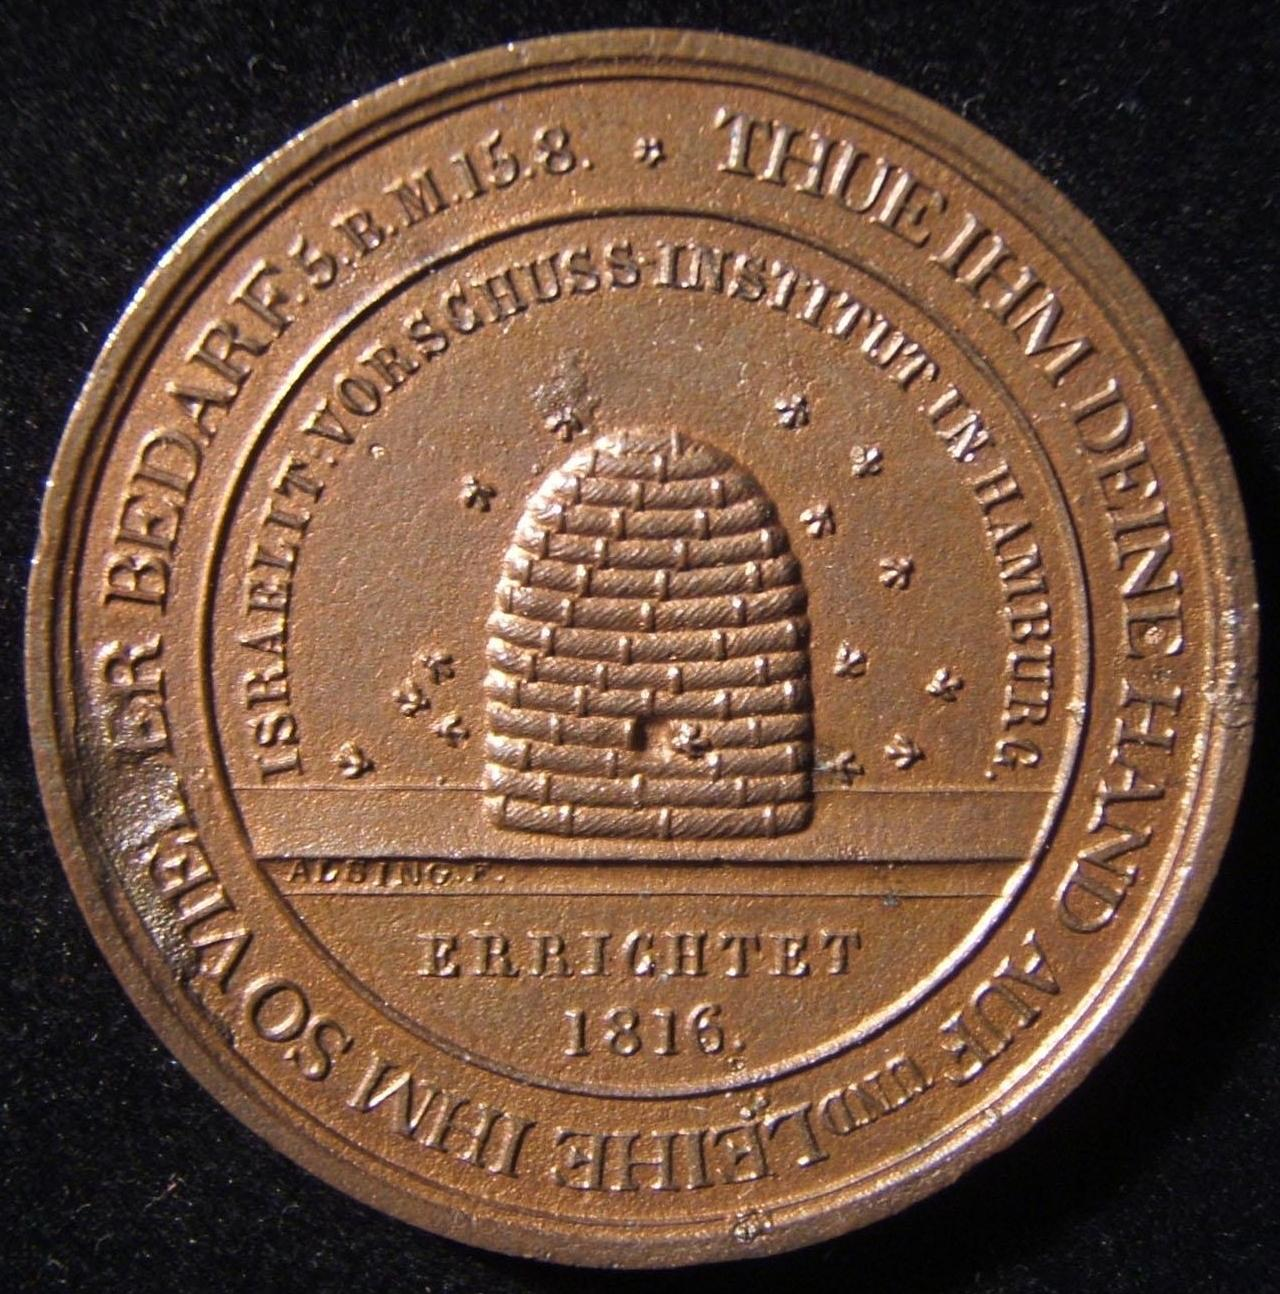 Germany, Hamburg; 25th Anniversary of Israel Loan Institute of Hamburg, 1841; cast in bronze; by Hans Friedrich Alsing; weight: 31.75g; size: 45mm. Obverse depicts a bee hive and l